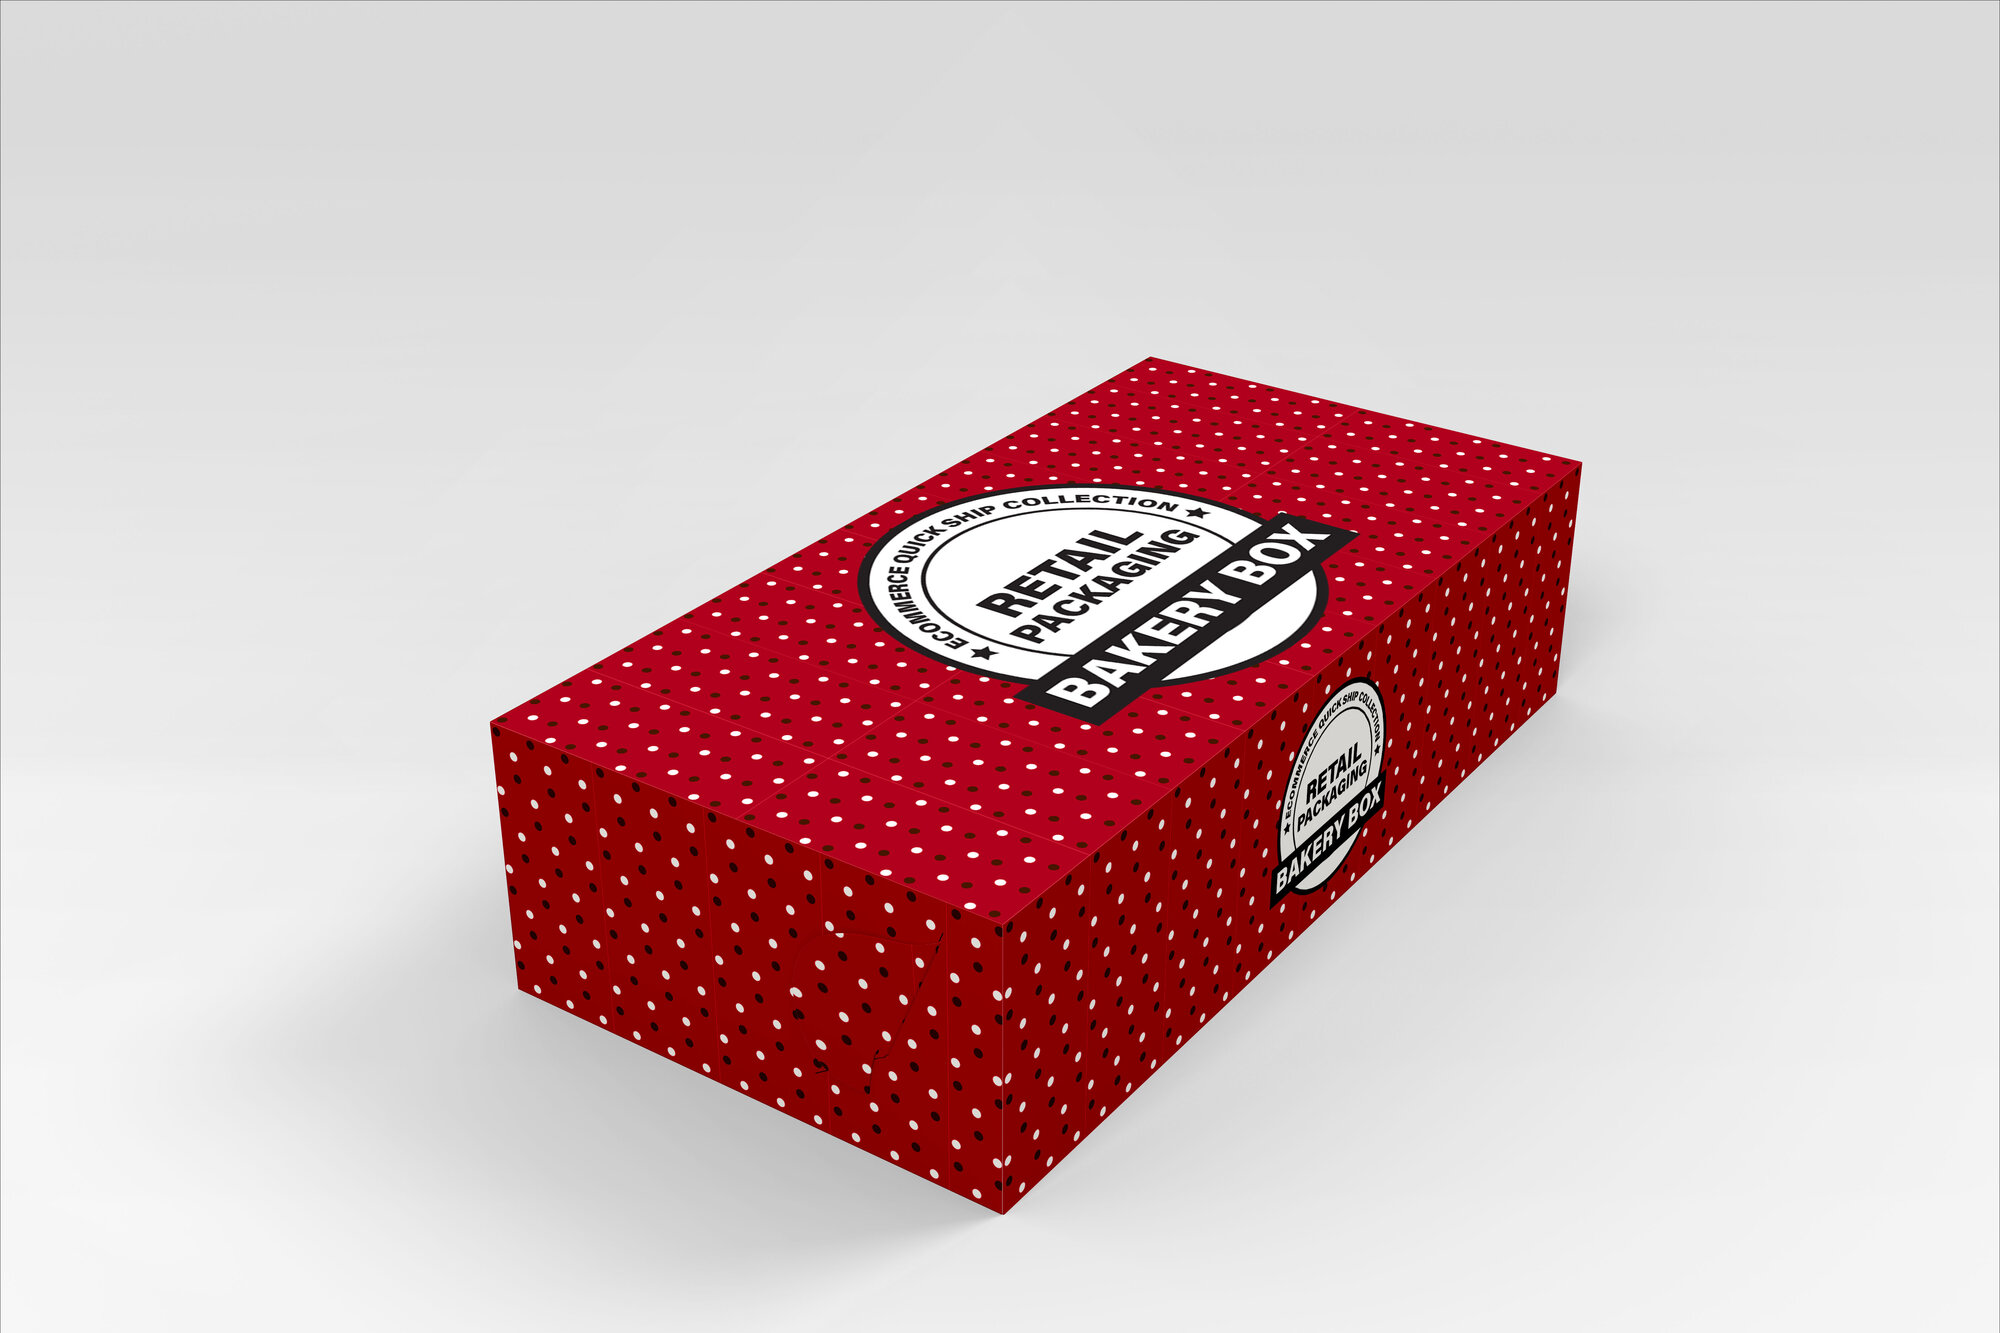 https://www.magentadepot.com/images/products_gallery_images/113_DonutBoxOfTwoClosed_v11_1.jpg